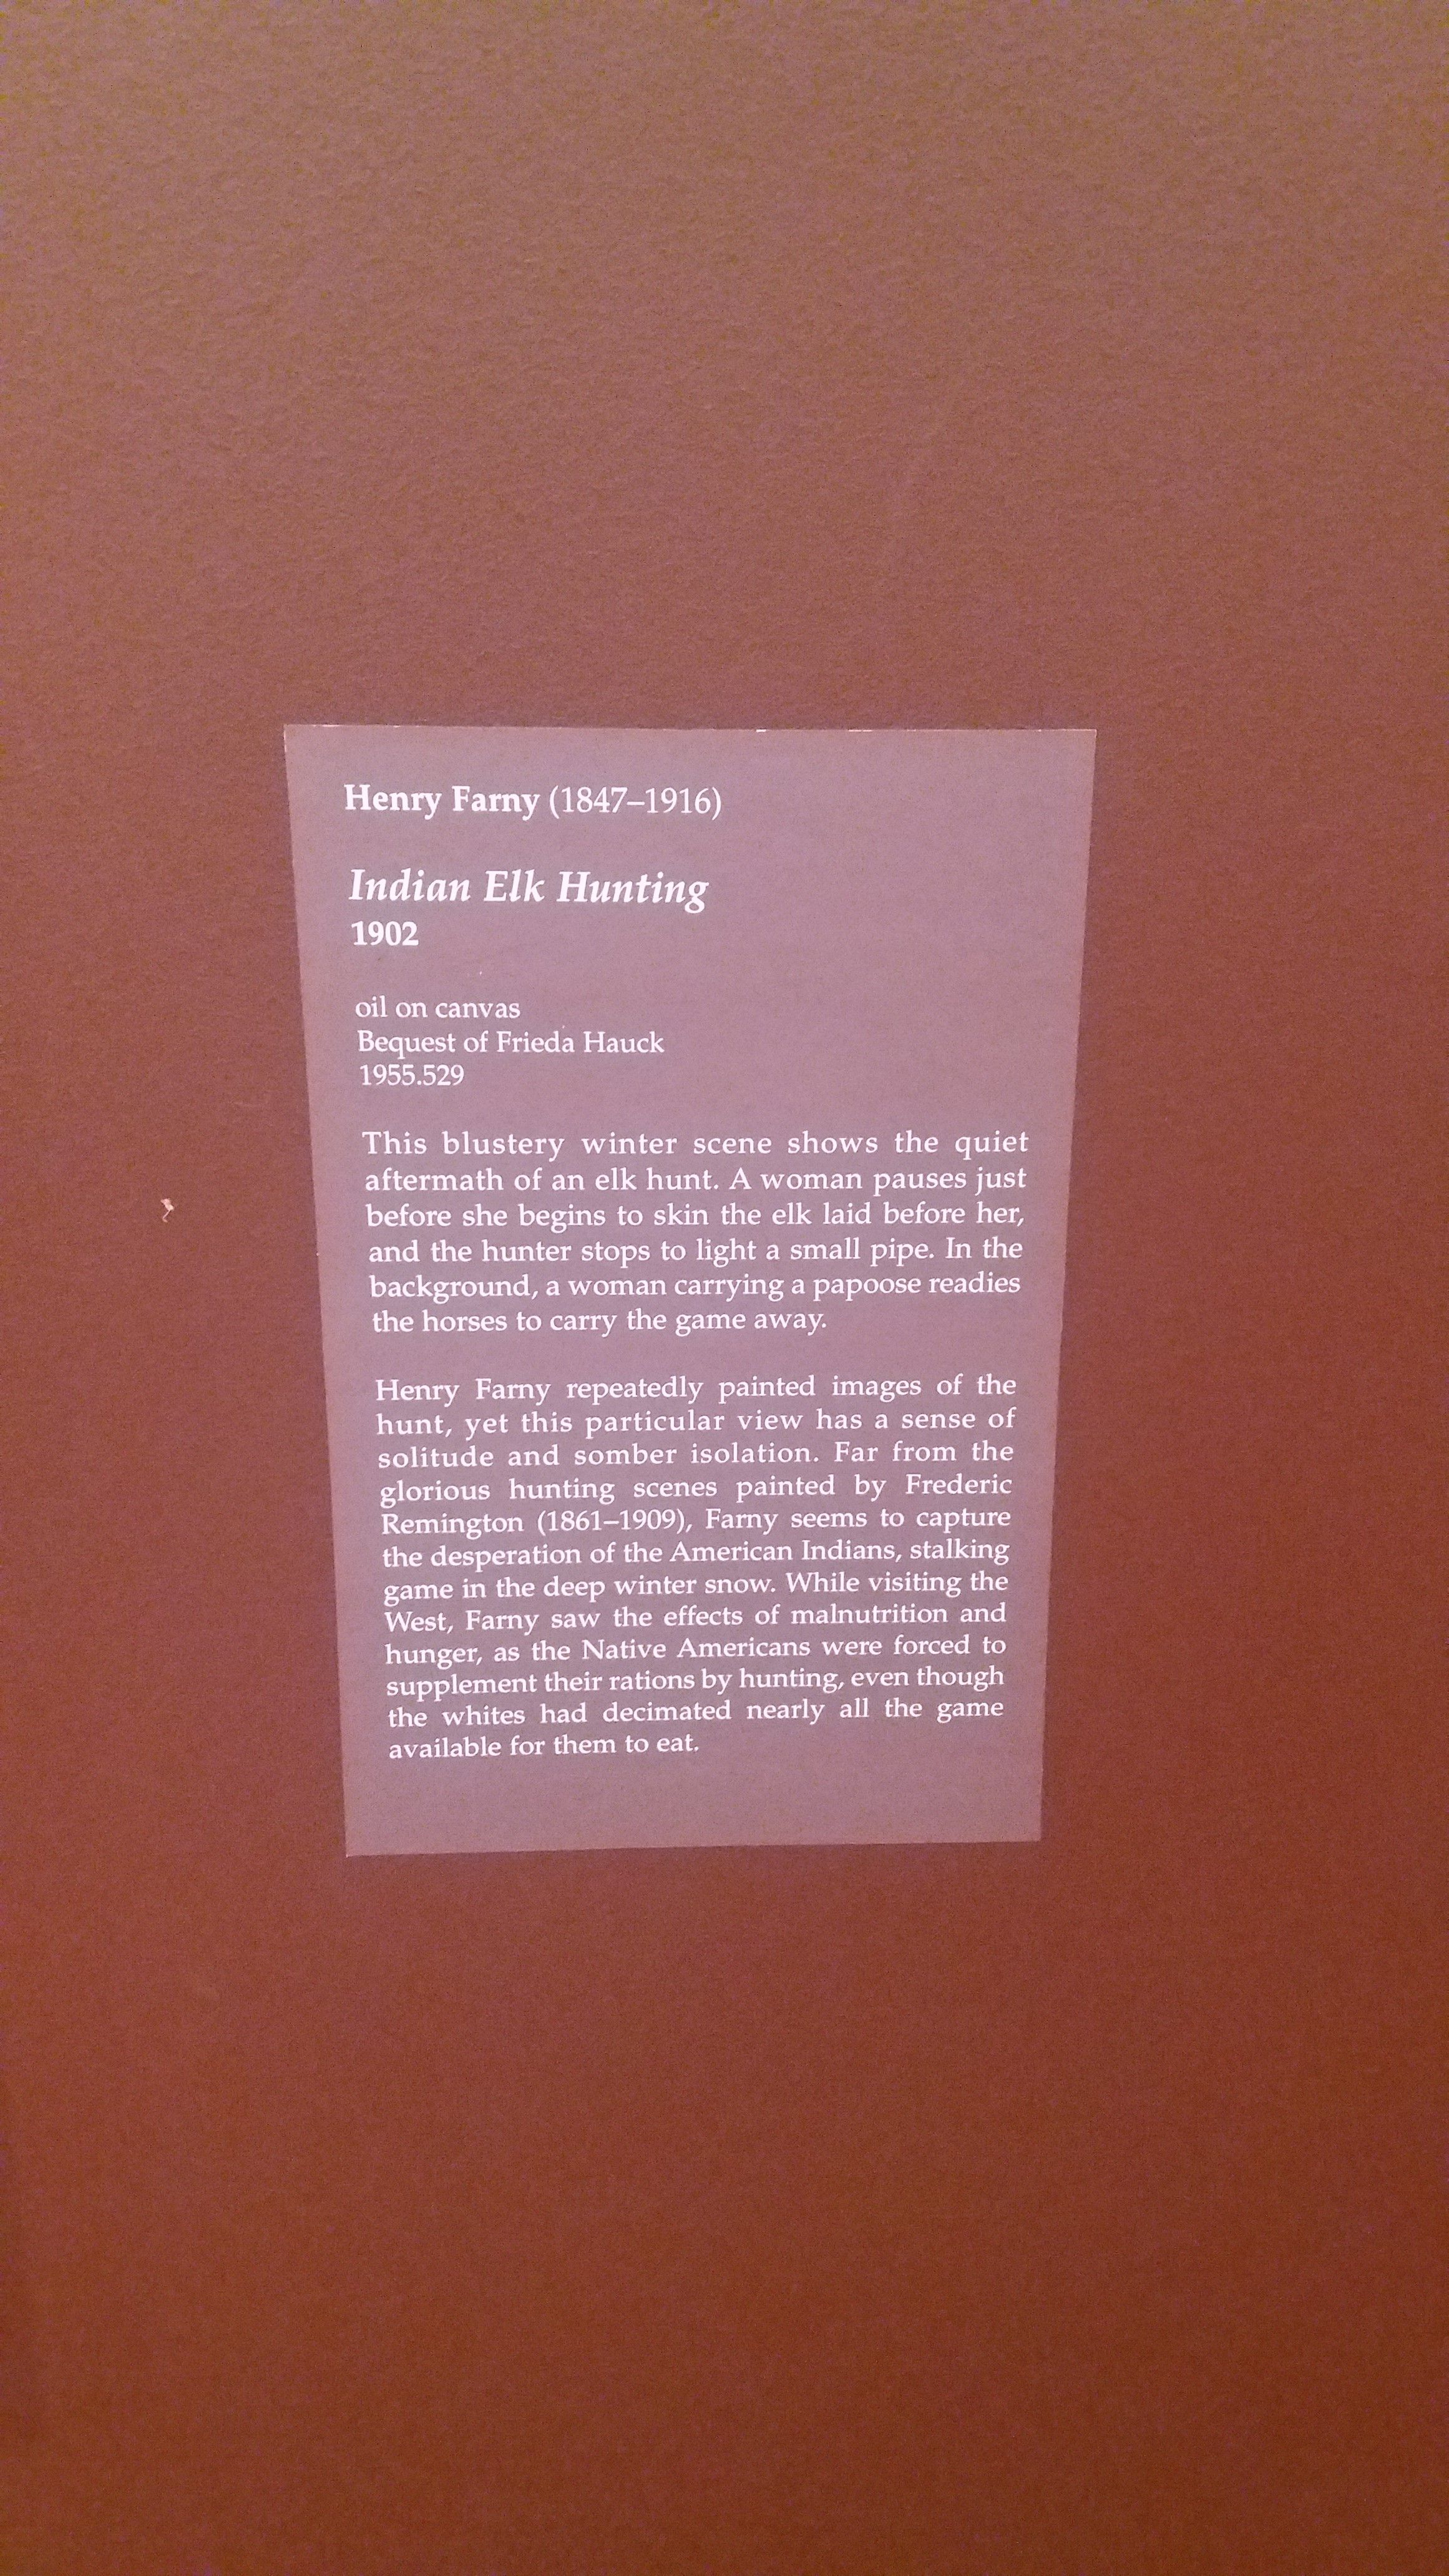 This description shows what happened after the elk hunt, and the significance of the winter scene in the painting.